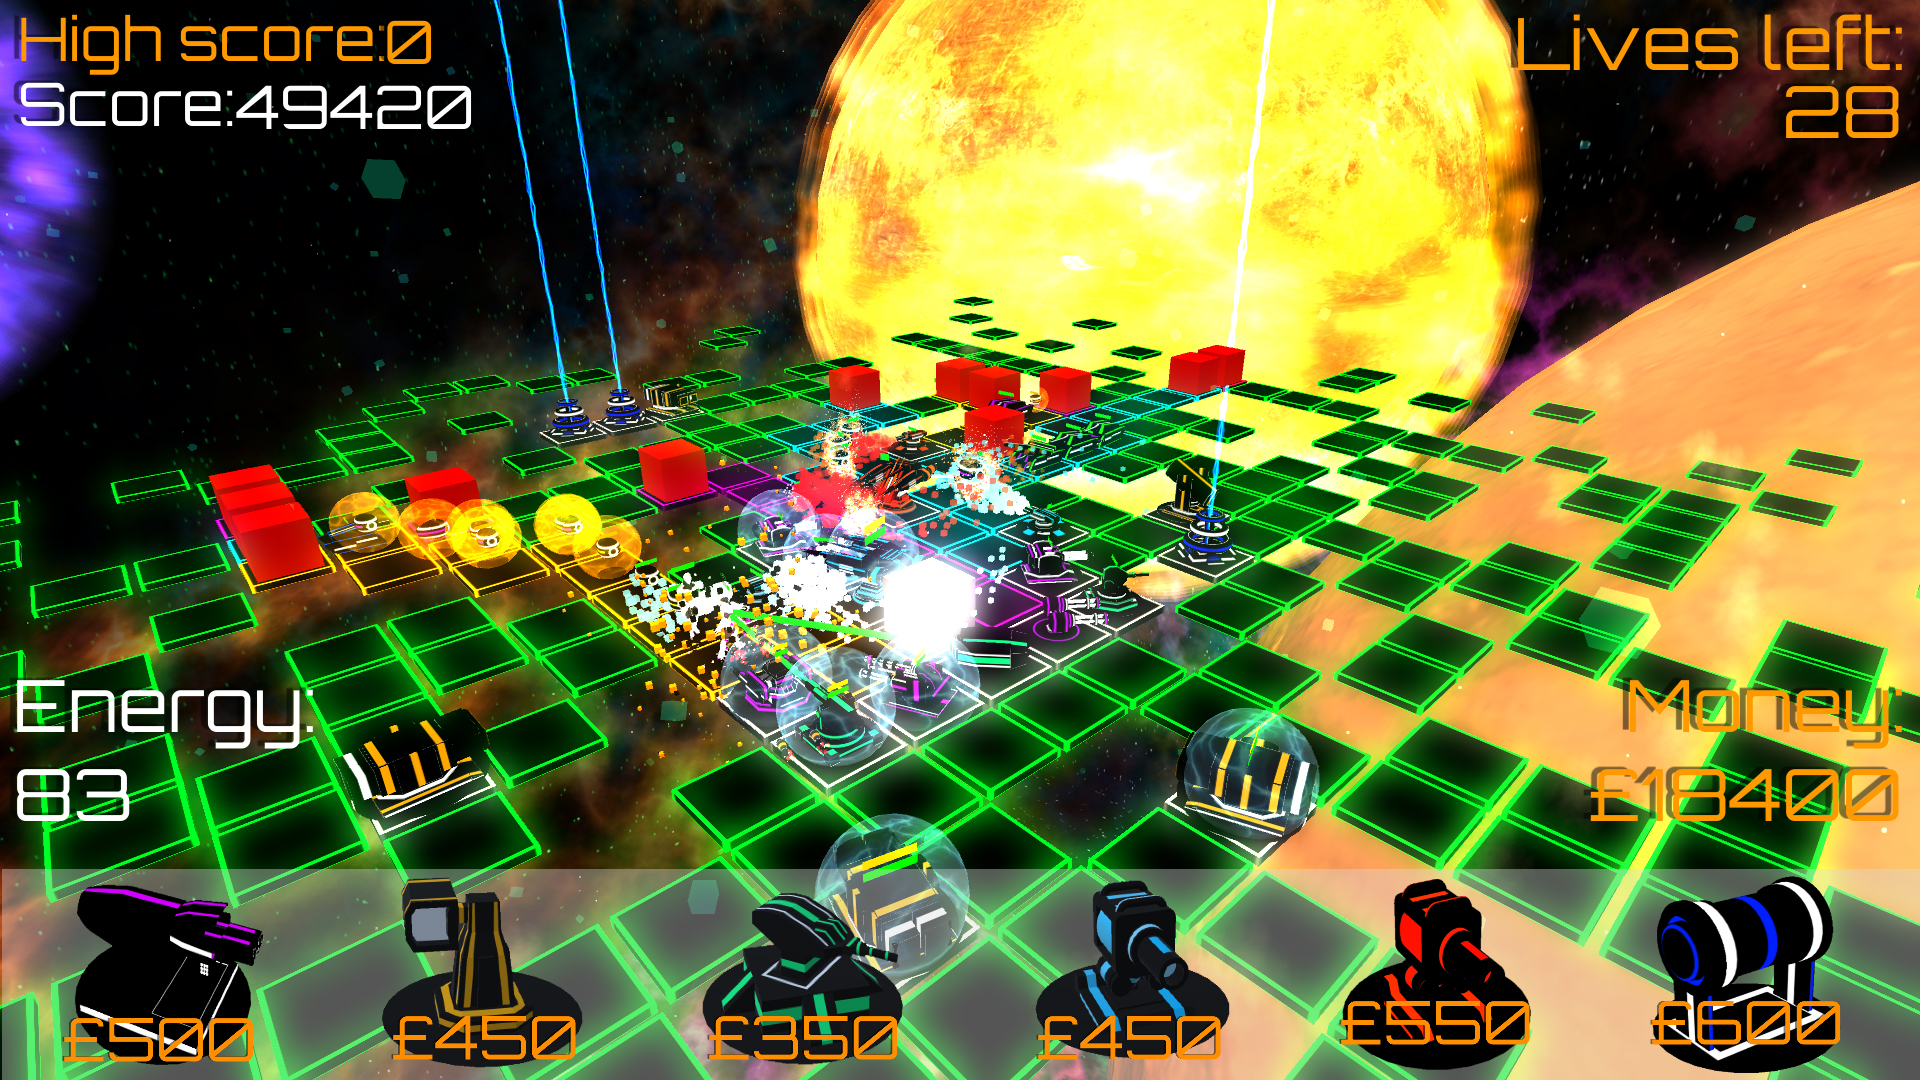 Orion Defenders - a hectic, randomly generated tower defense